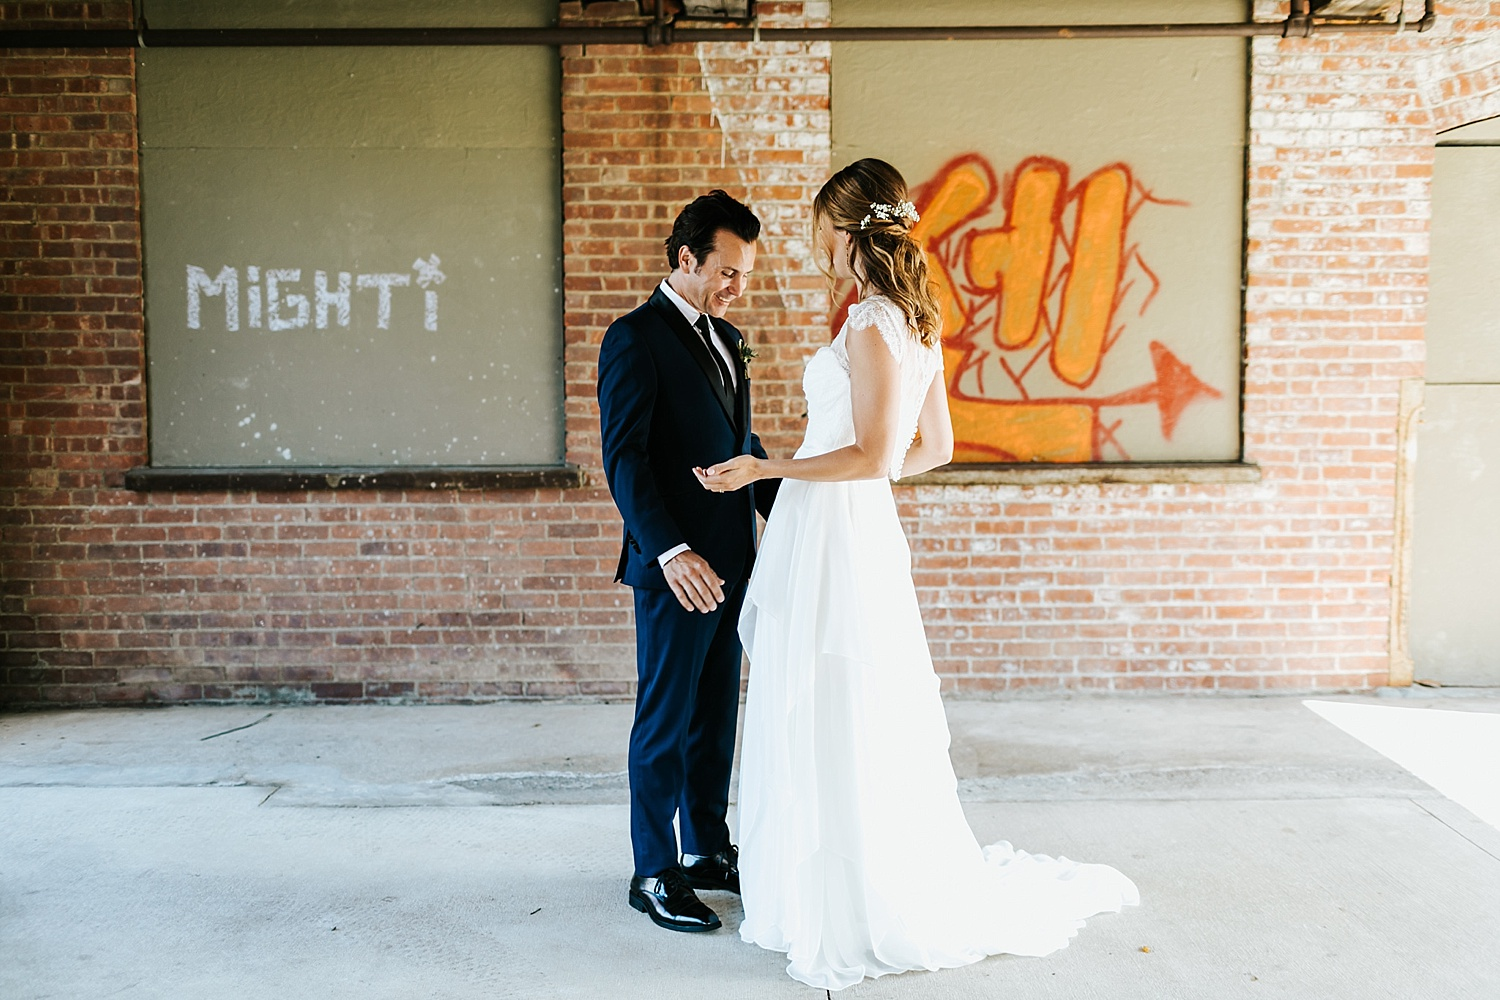 Bride and groom first look surrounded by walls full of graffiti